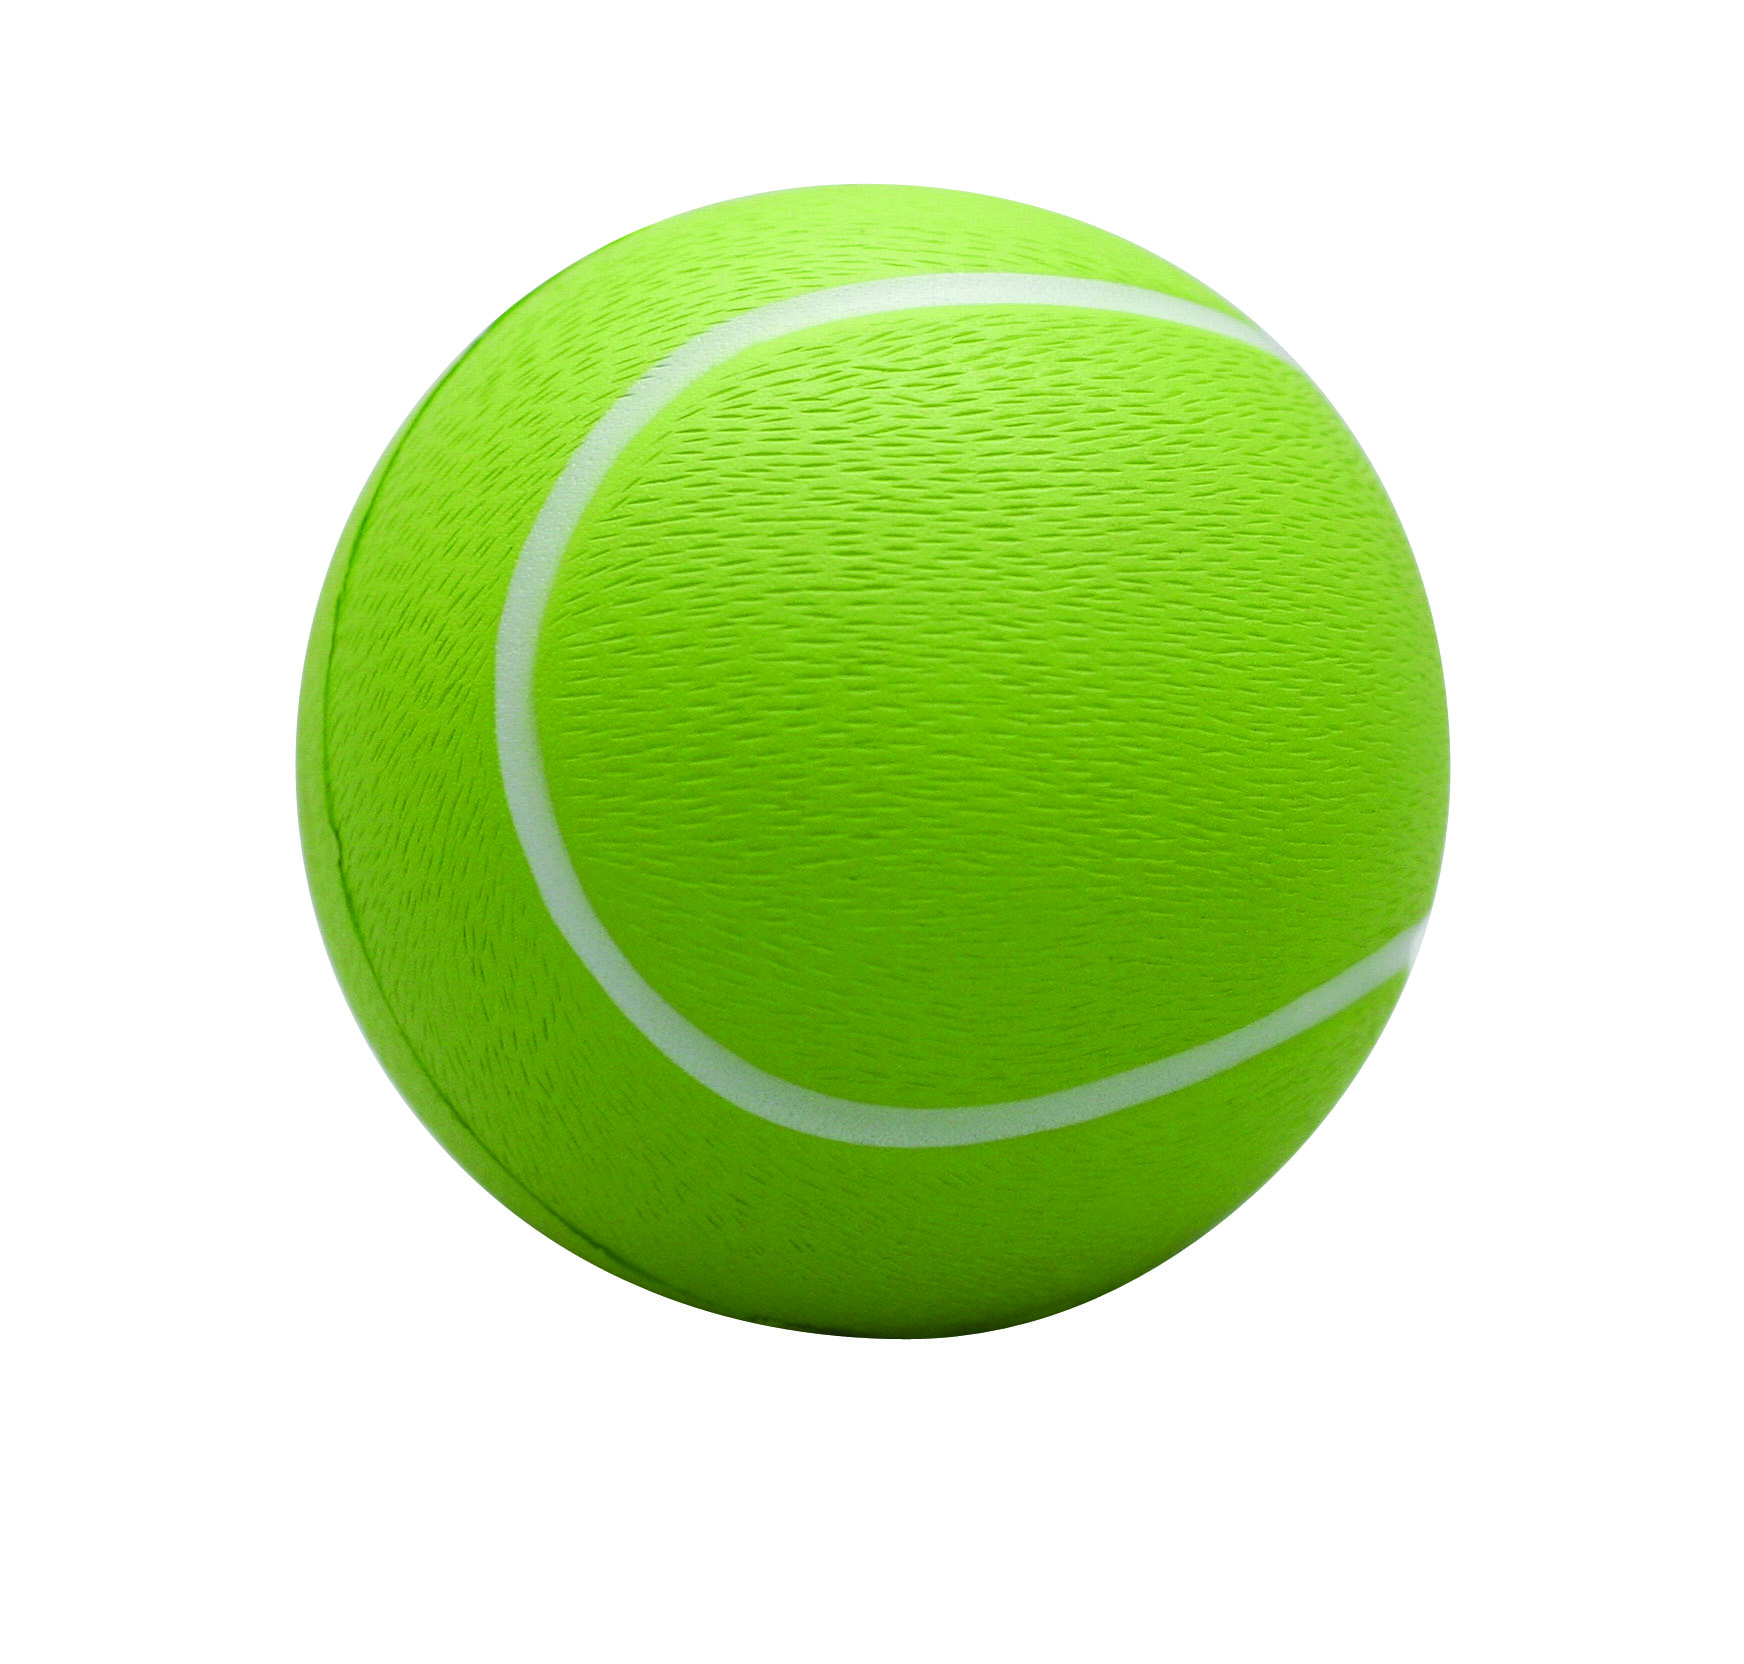 1744x1664 Tennis Ball Clipart Green Ball